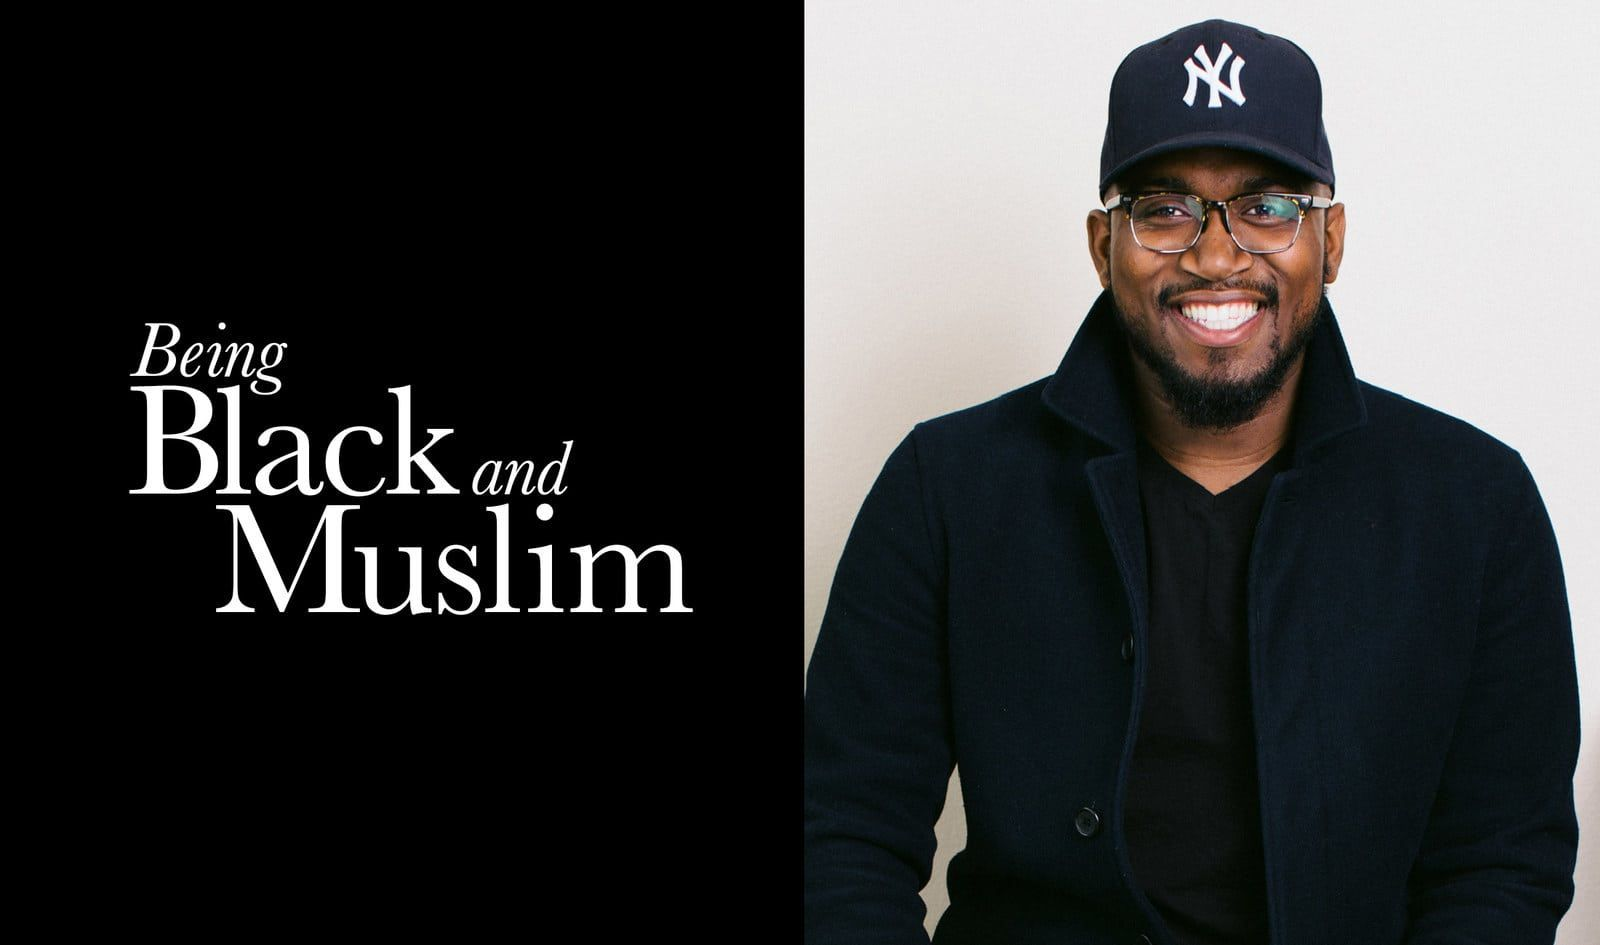 This Powerful Photo Series Is Showing What It Is Like To Be Black And Muslim In The US